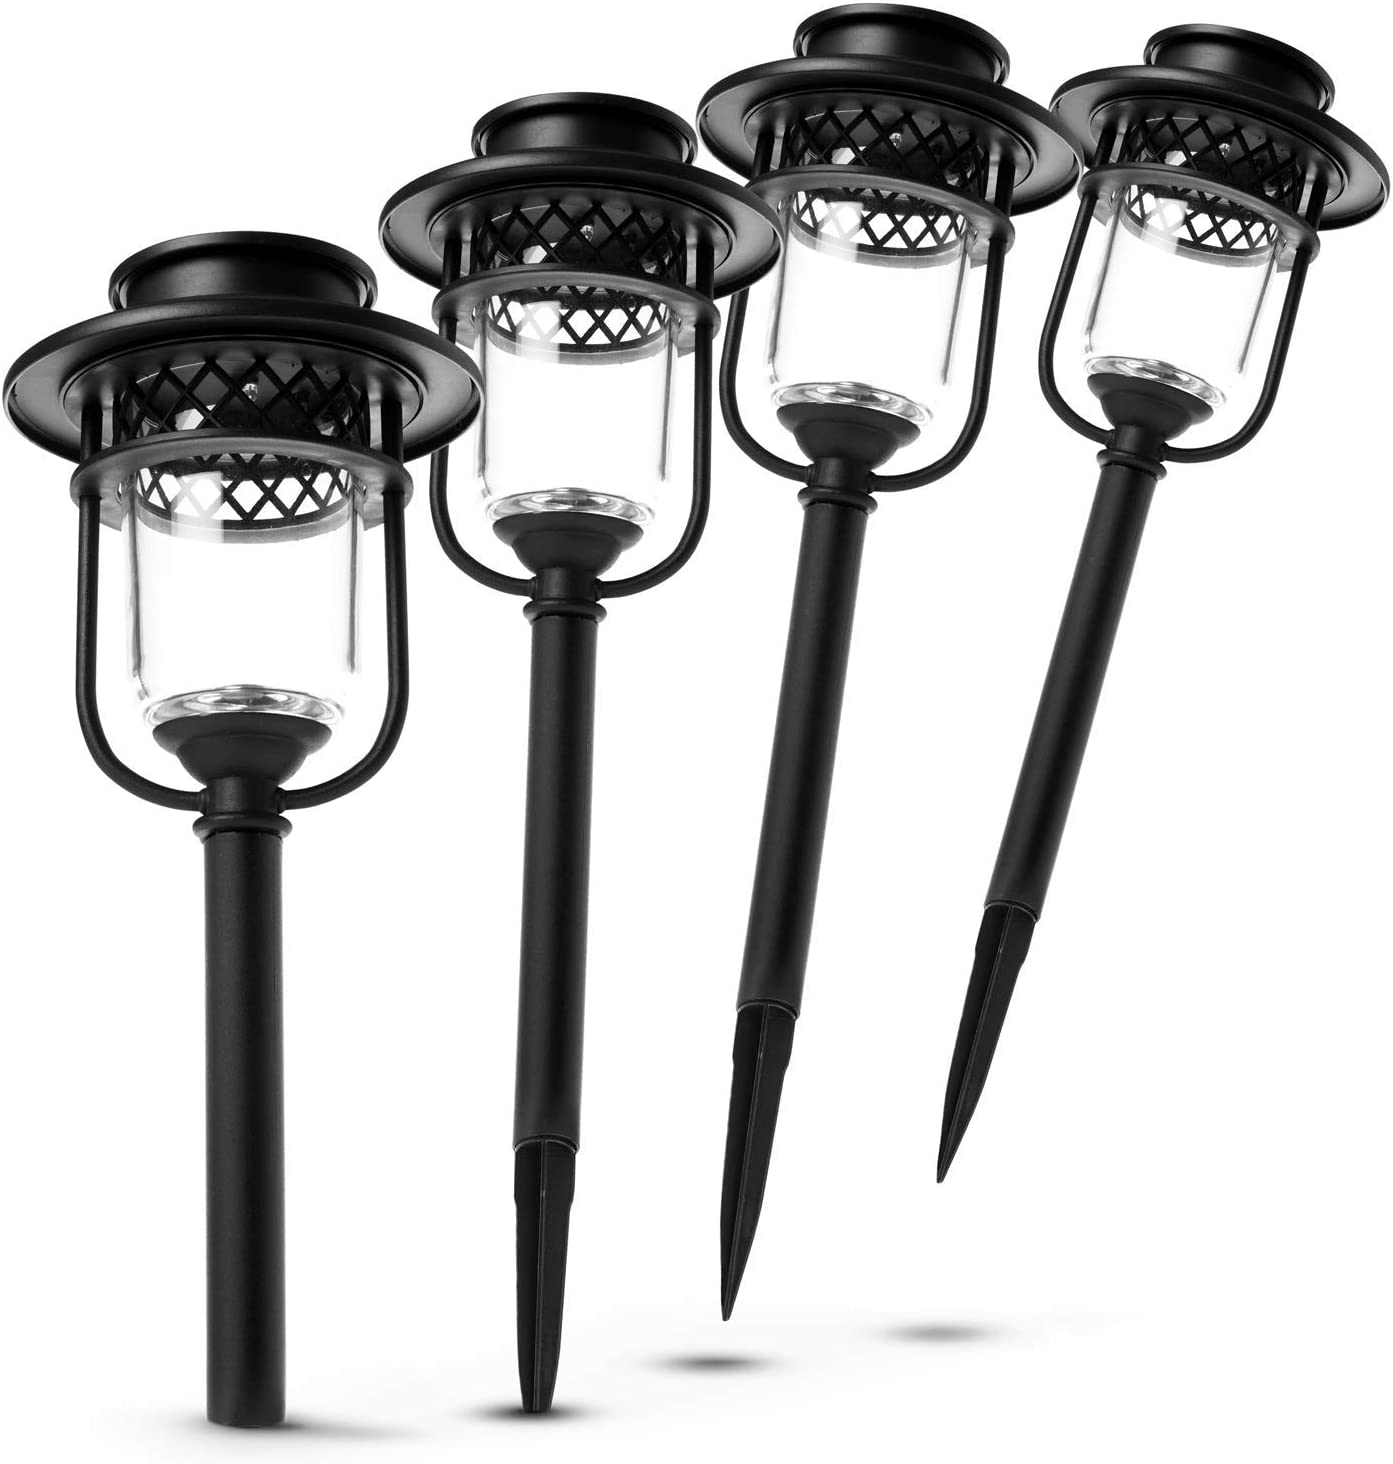 Home Zone Security Pathway & Garden Solar Glass Lights Stainless Steel (4-Set)